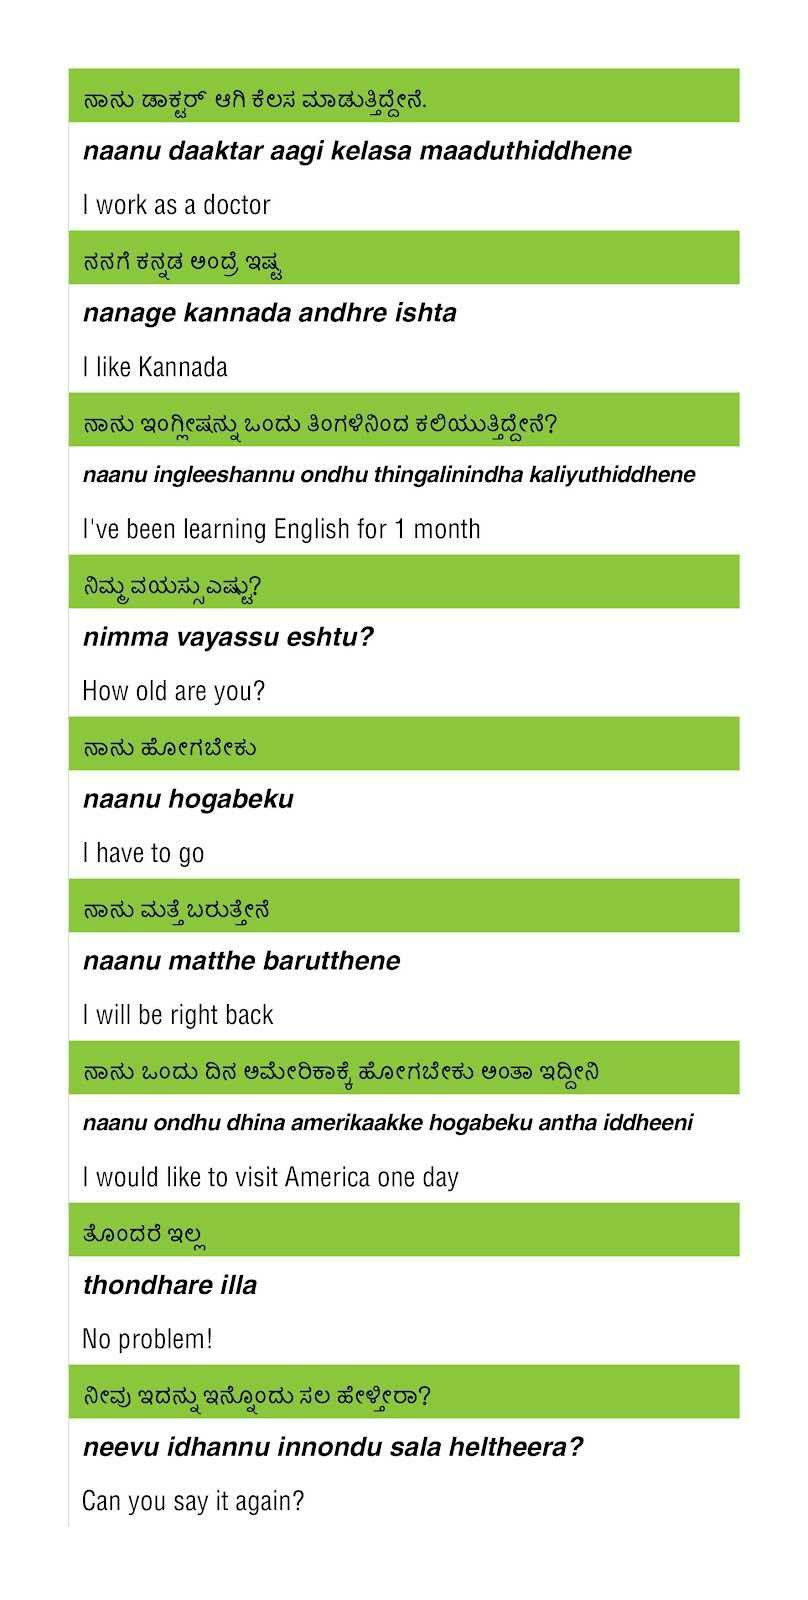 Pin By Khan On Kannada Language In 2021 Learn A New Language Kannada Language Learn English [ 1600 x 808 Pixel ]